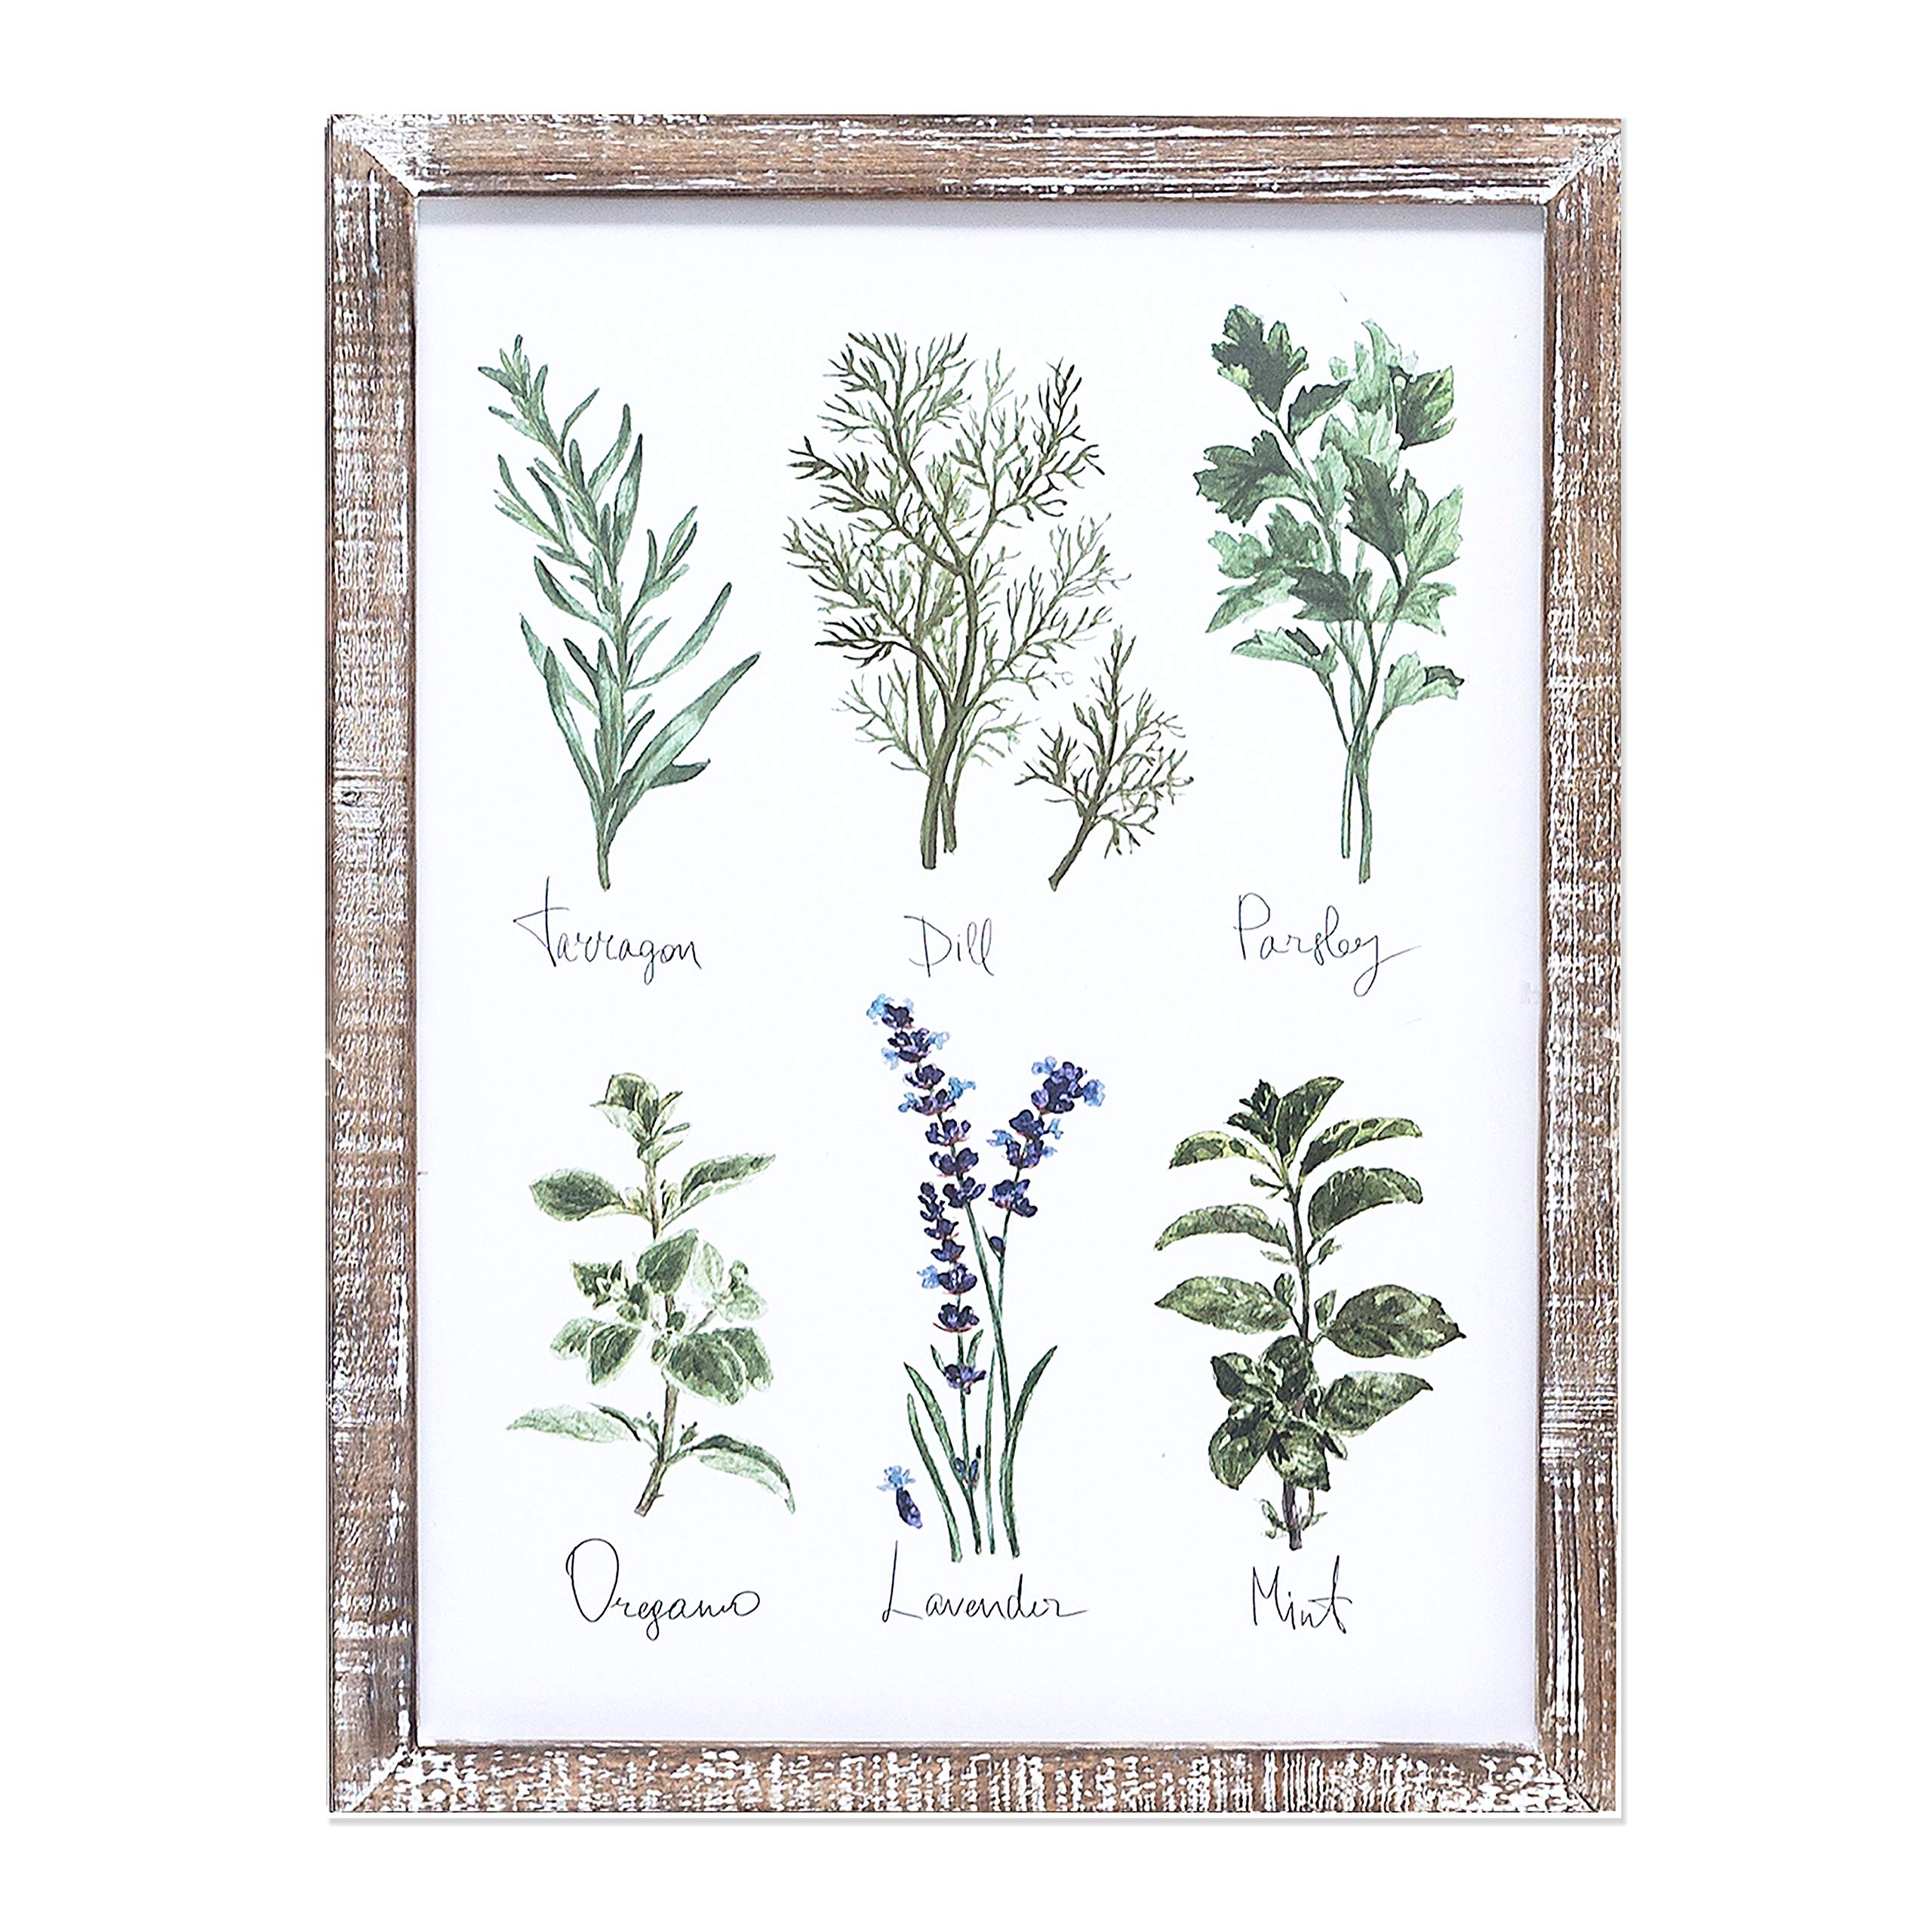 Barnyard Designs Kitchen Herbs and Spices Wall Art Decor Botanical Print Sign Rustic Country Farmhouse Wood Plaque Framed Home Wall Decor 15.75'' x 11.75''